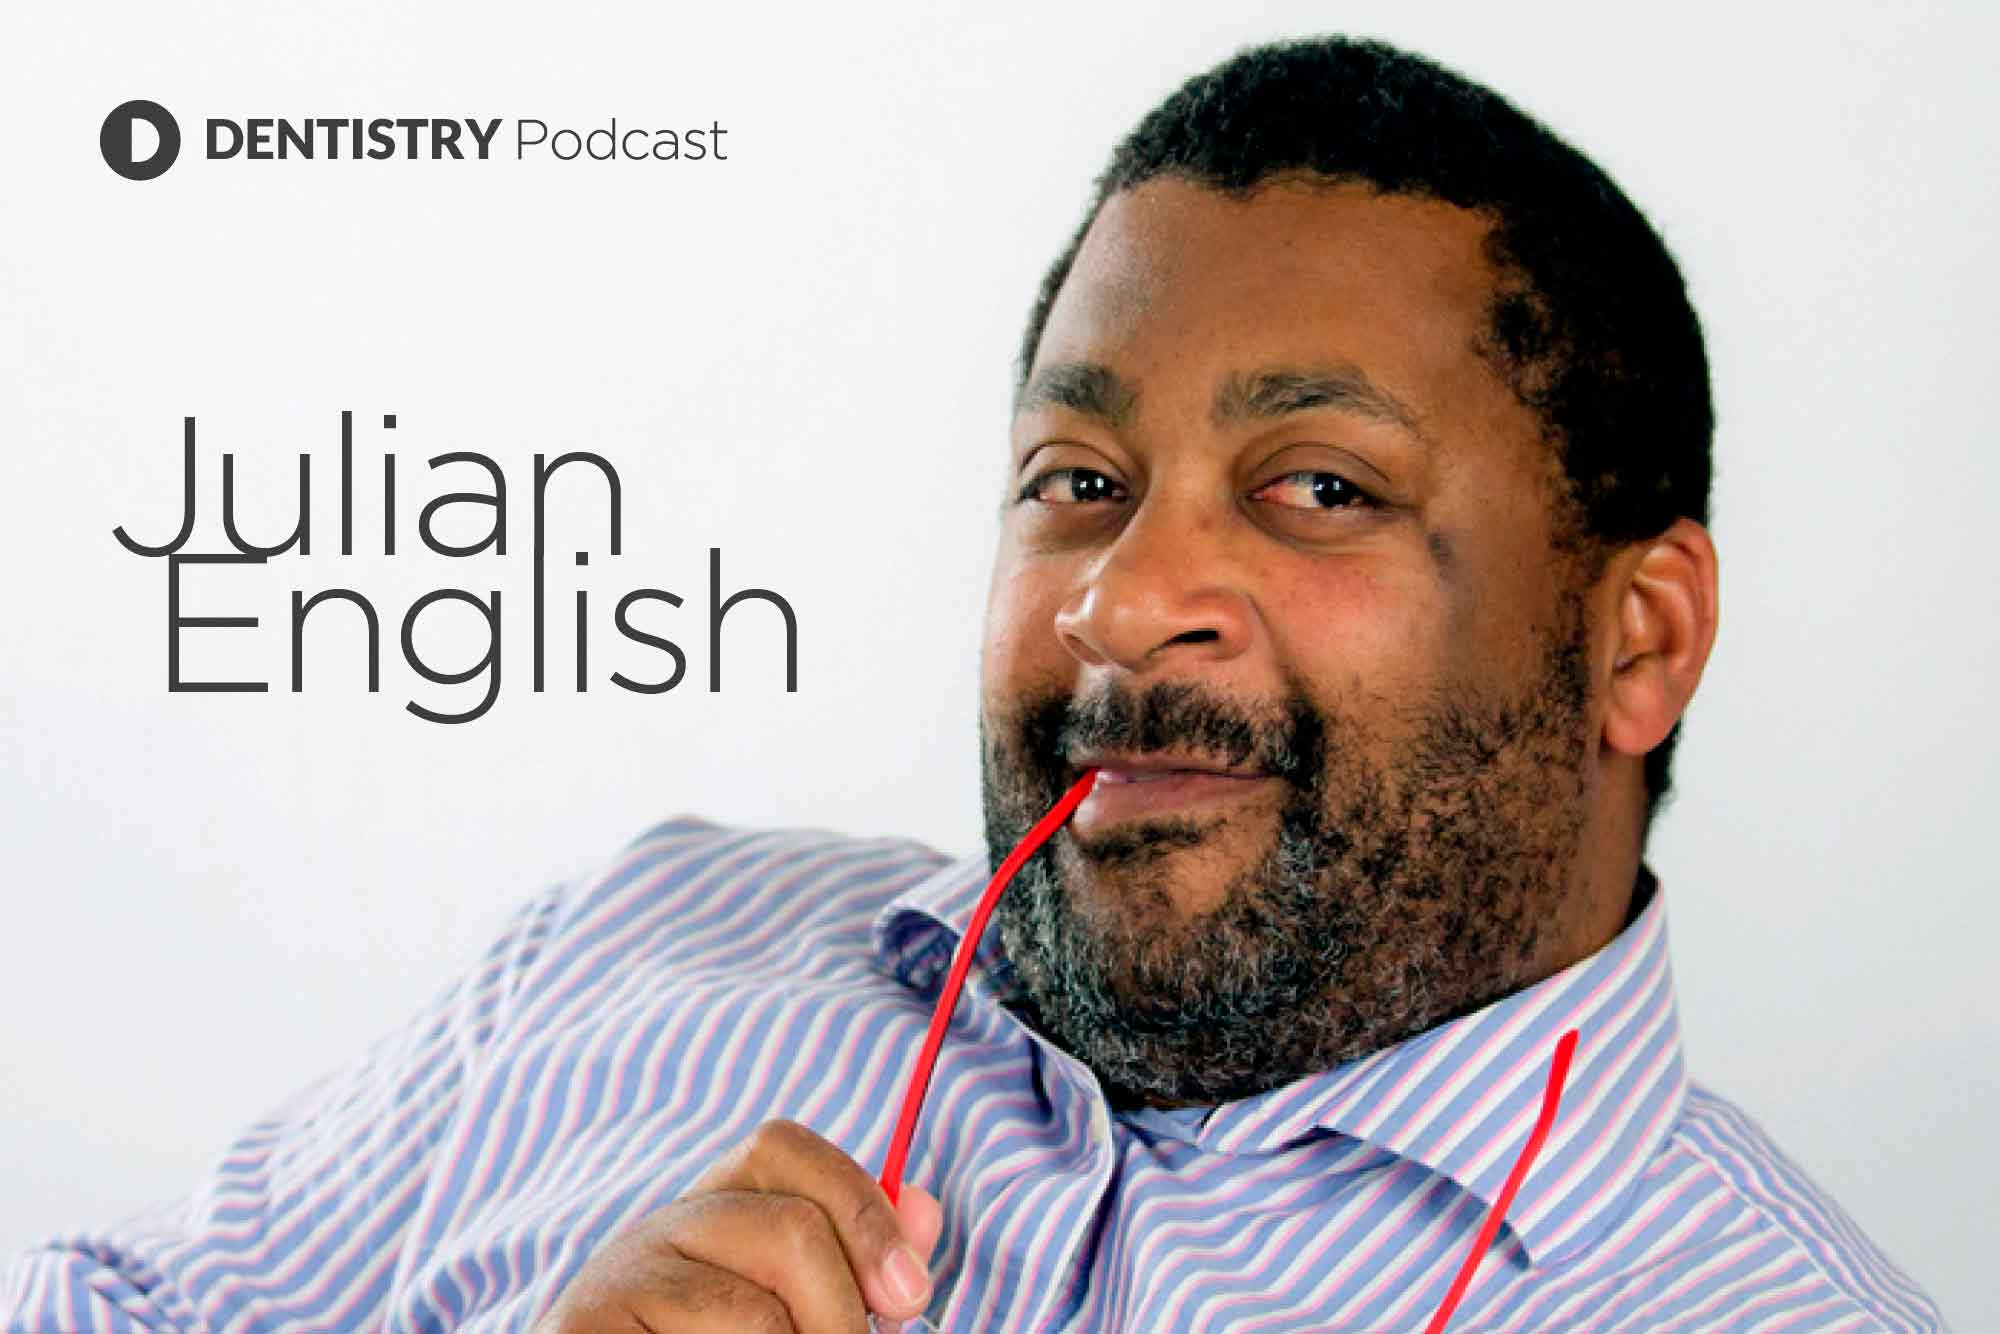 Dentistry Online podcast with Julian English